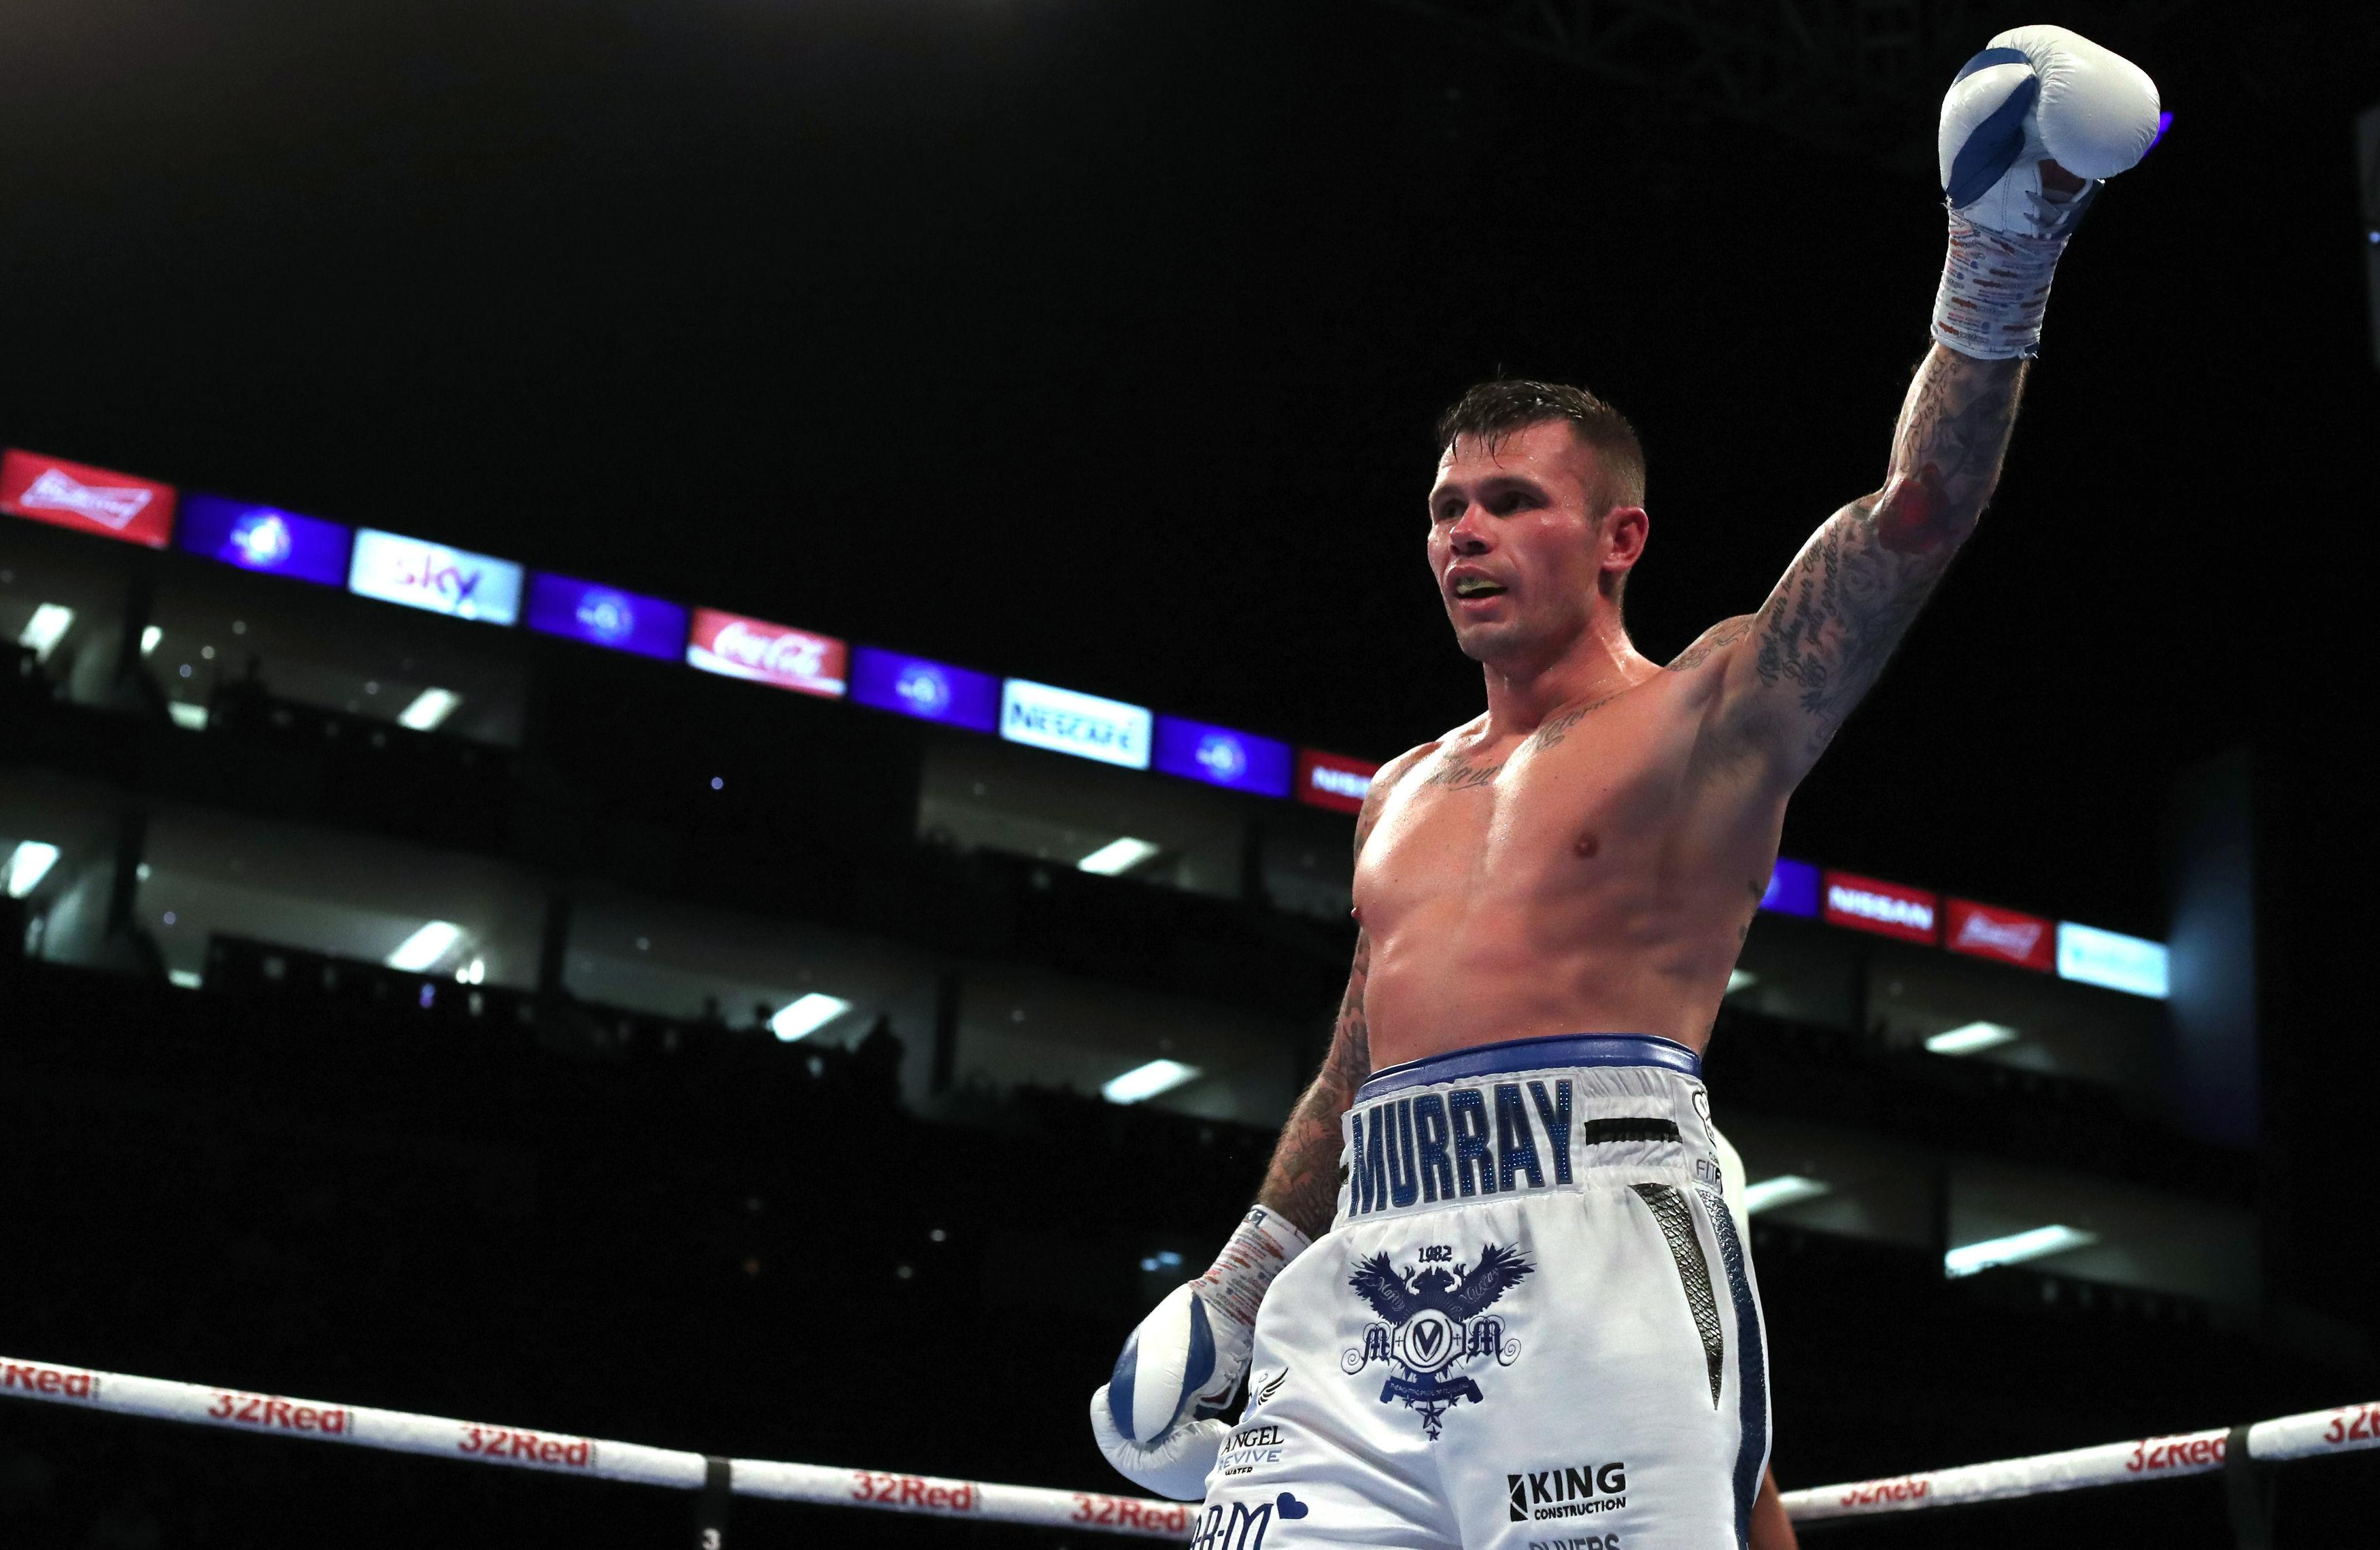 The St Helens scrapper raises his arm in victory at the end of the fight